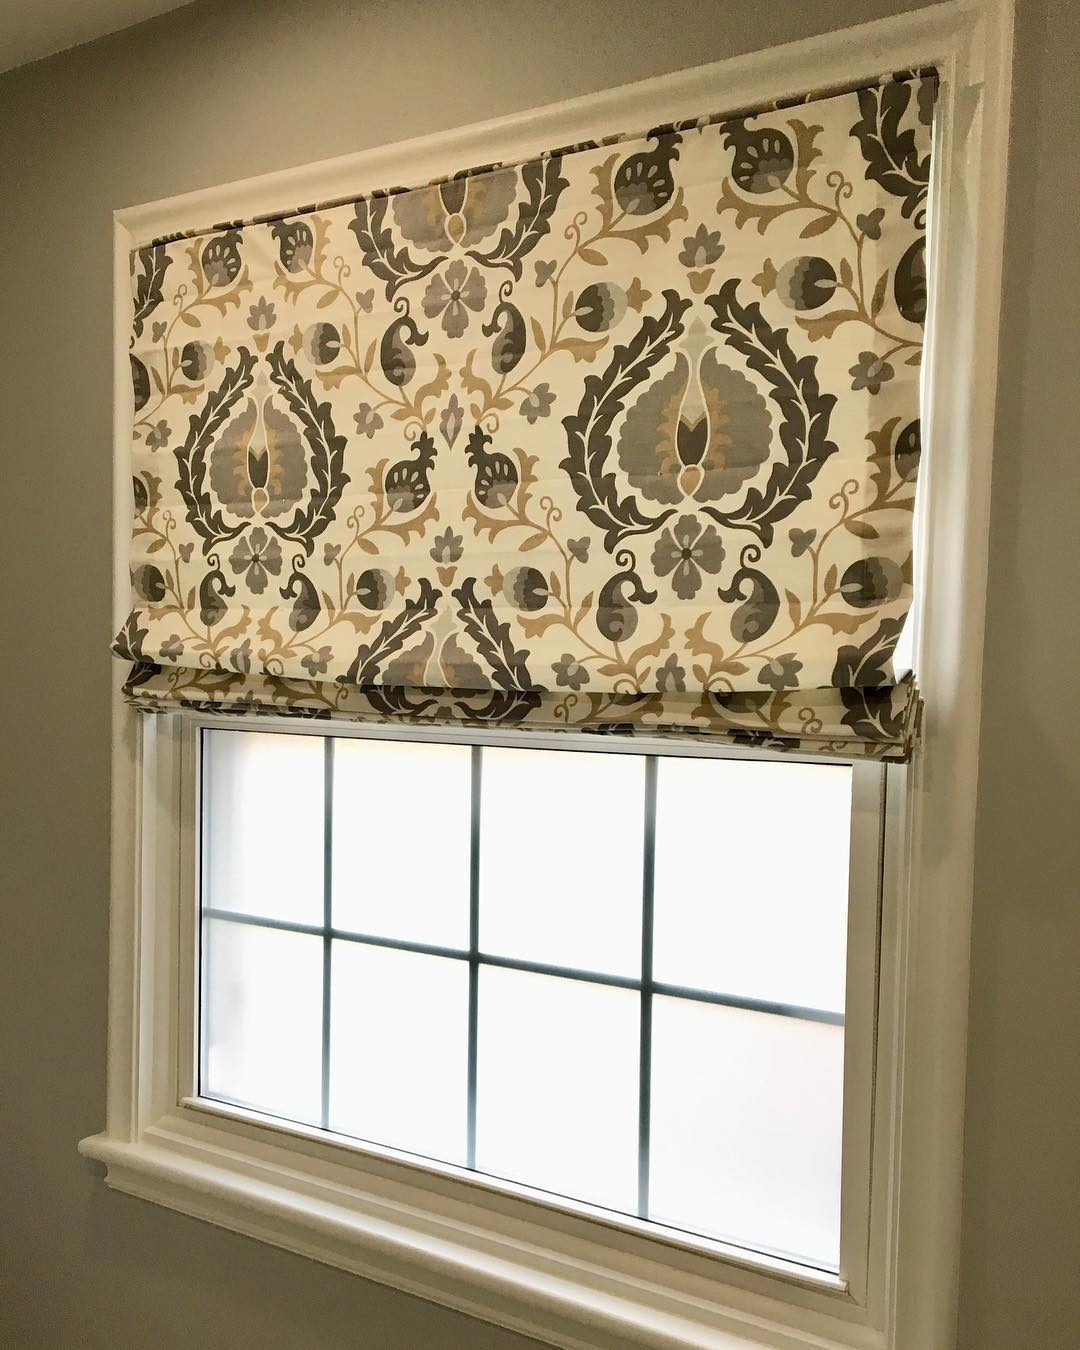 DIY Custom Roman Shades with Practical Master Classes and Photos. Nice pattern for the curtains on the sash window